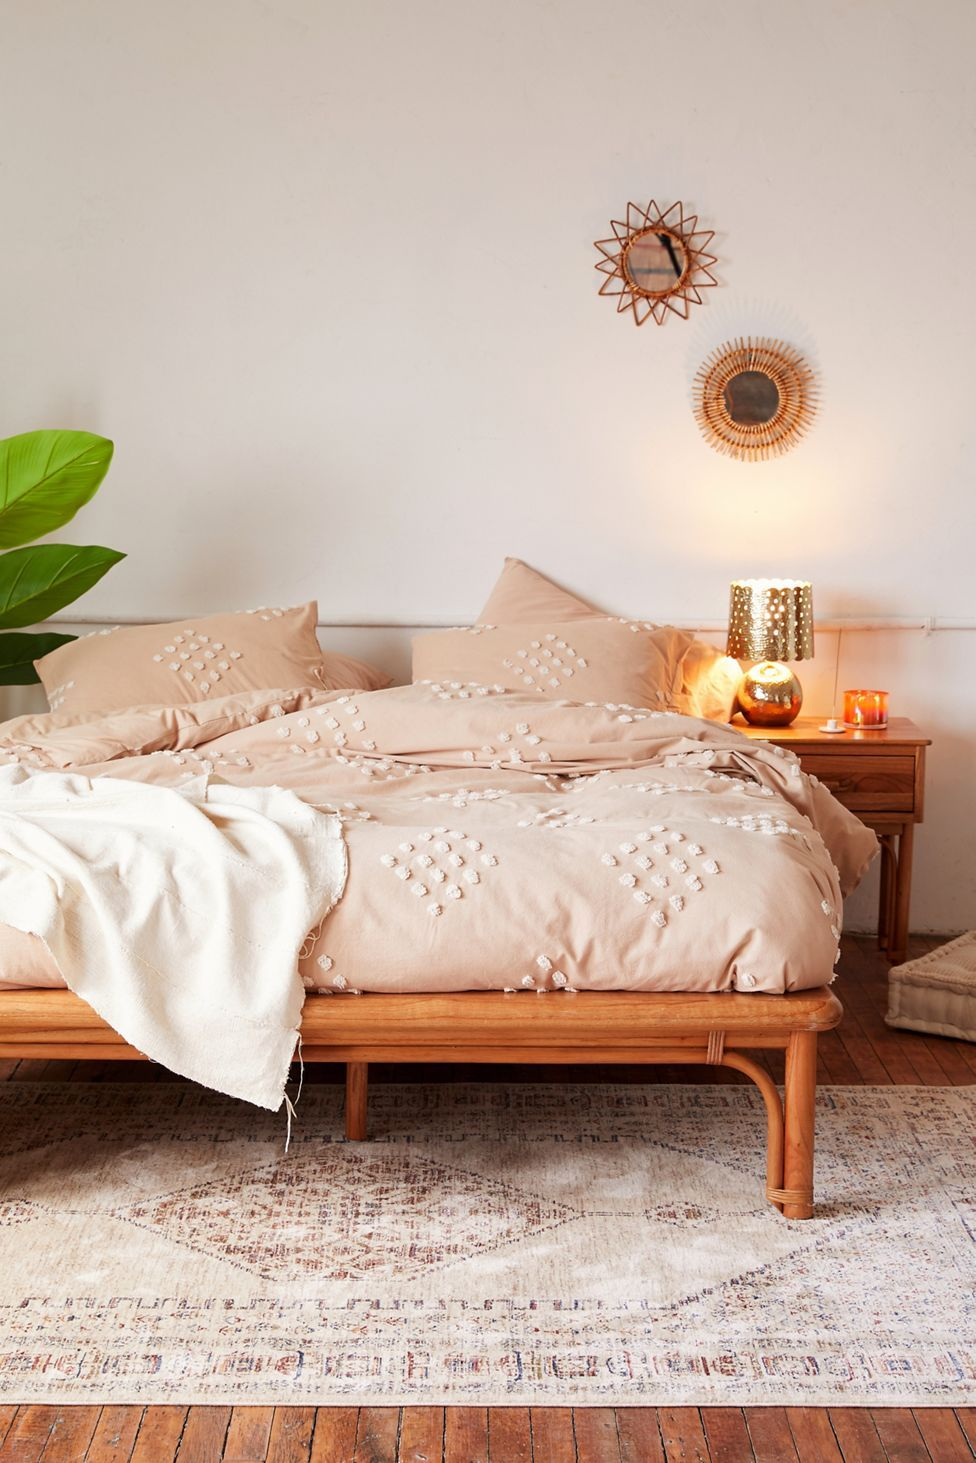 Tufted Geo Duvet Cover | Urban Outfitters in 2020 ...